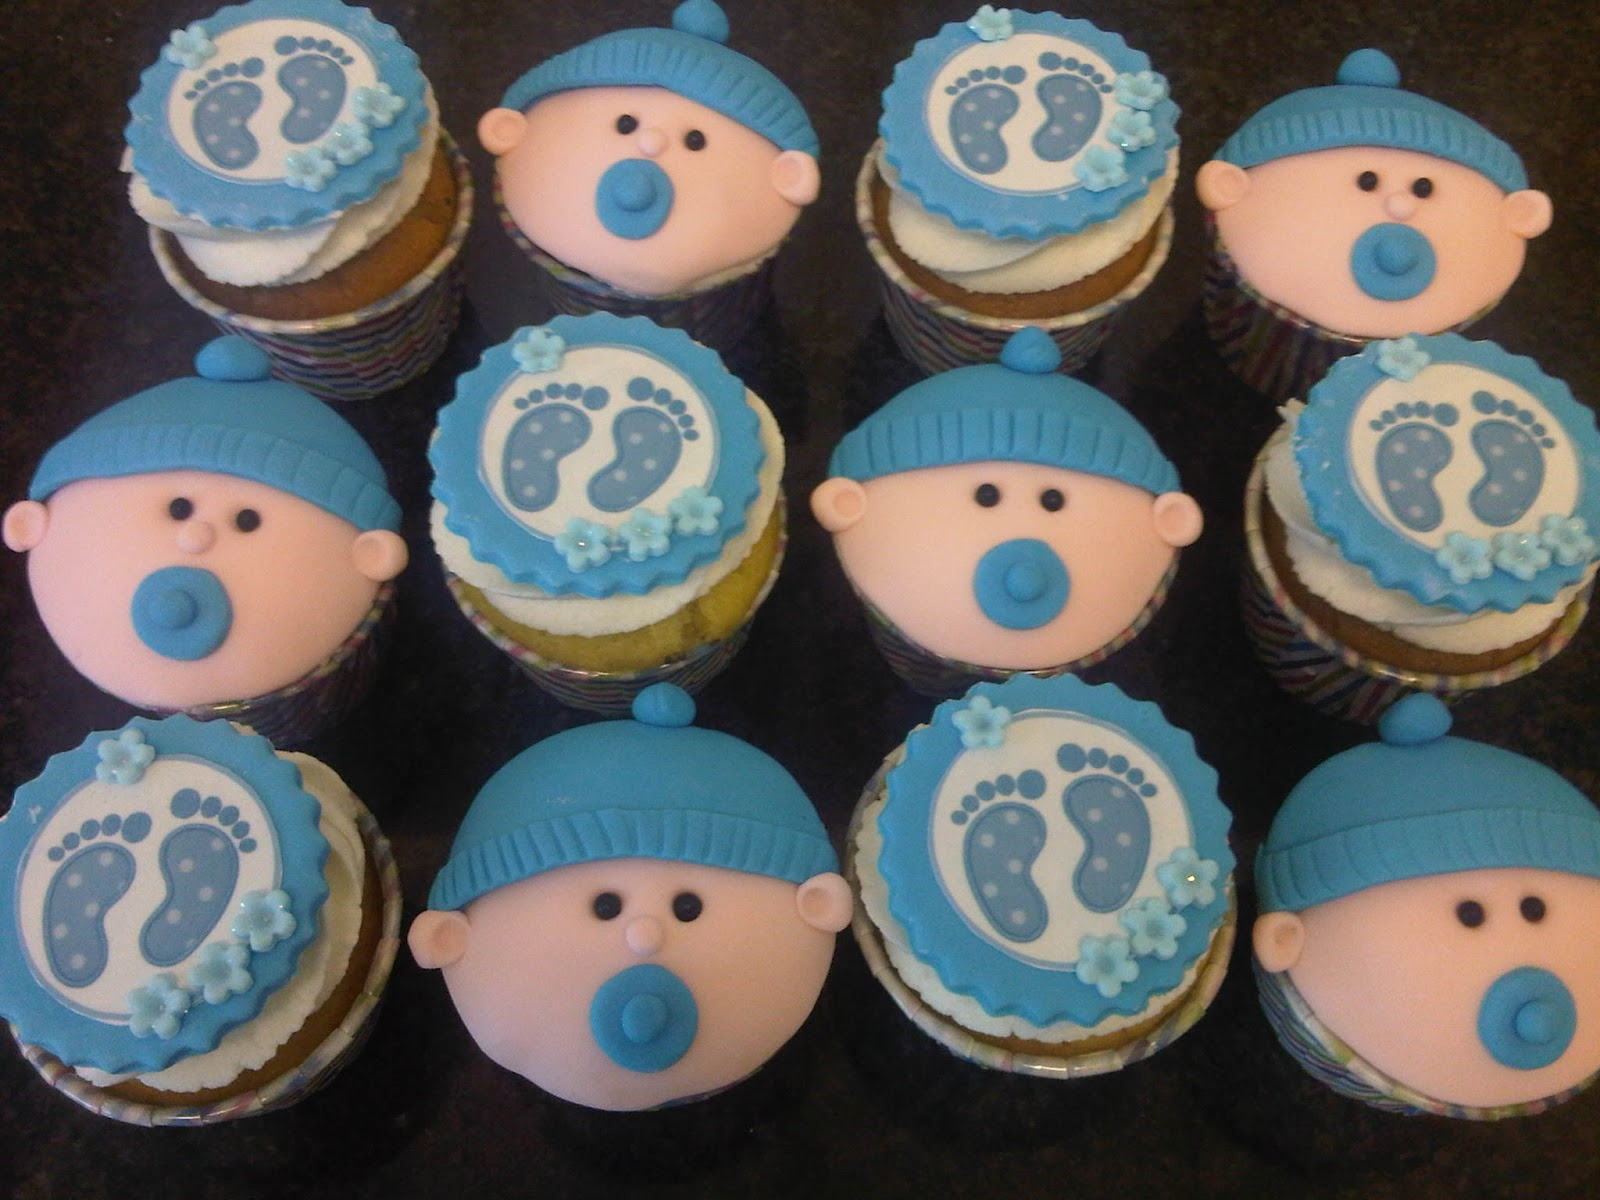 Baby Shower Cupcakes For Boys Baby shower cupcakes - boy!